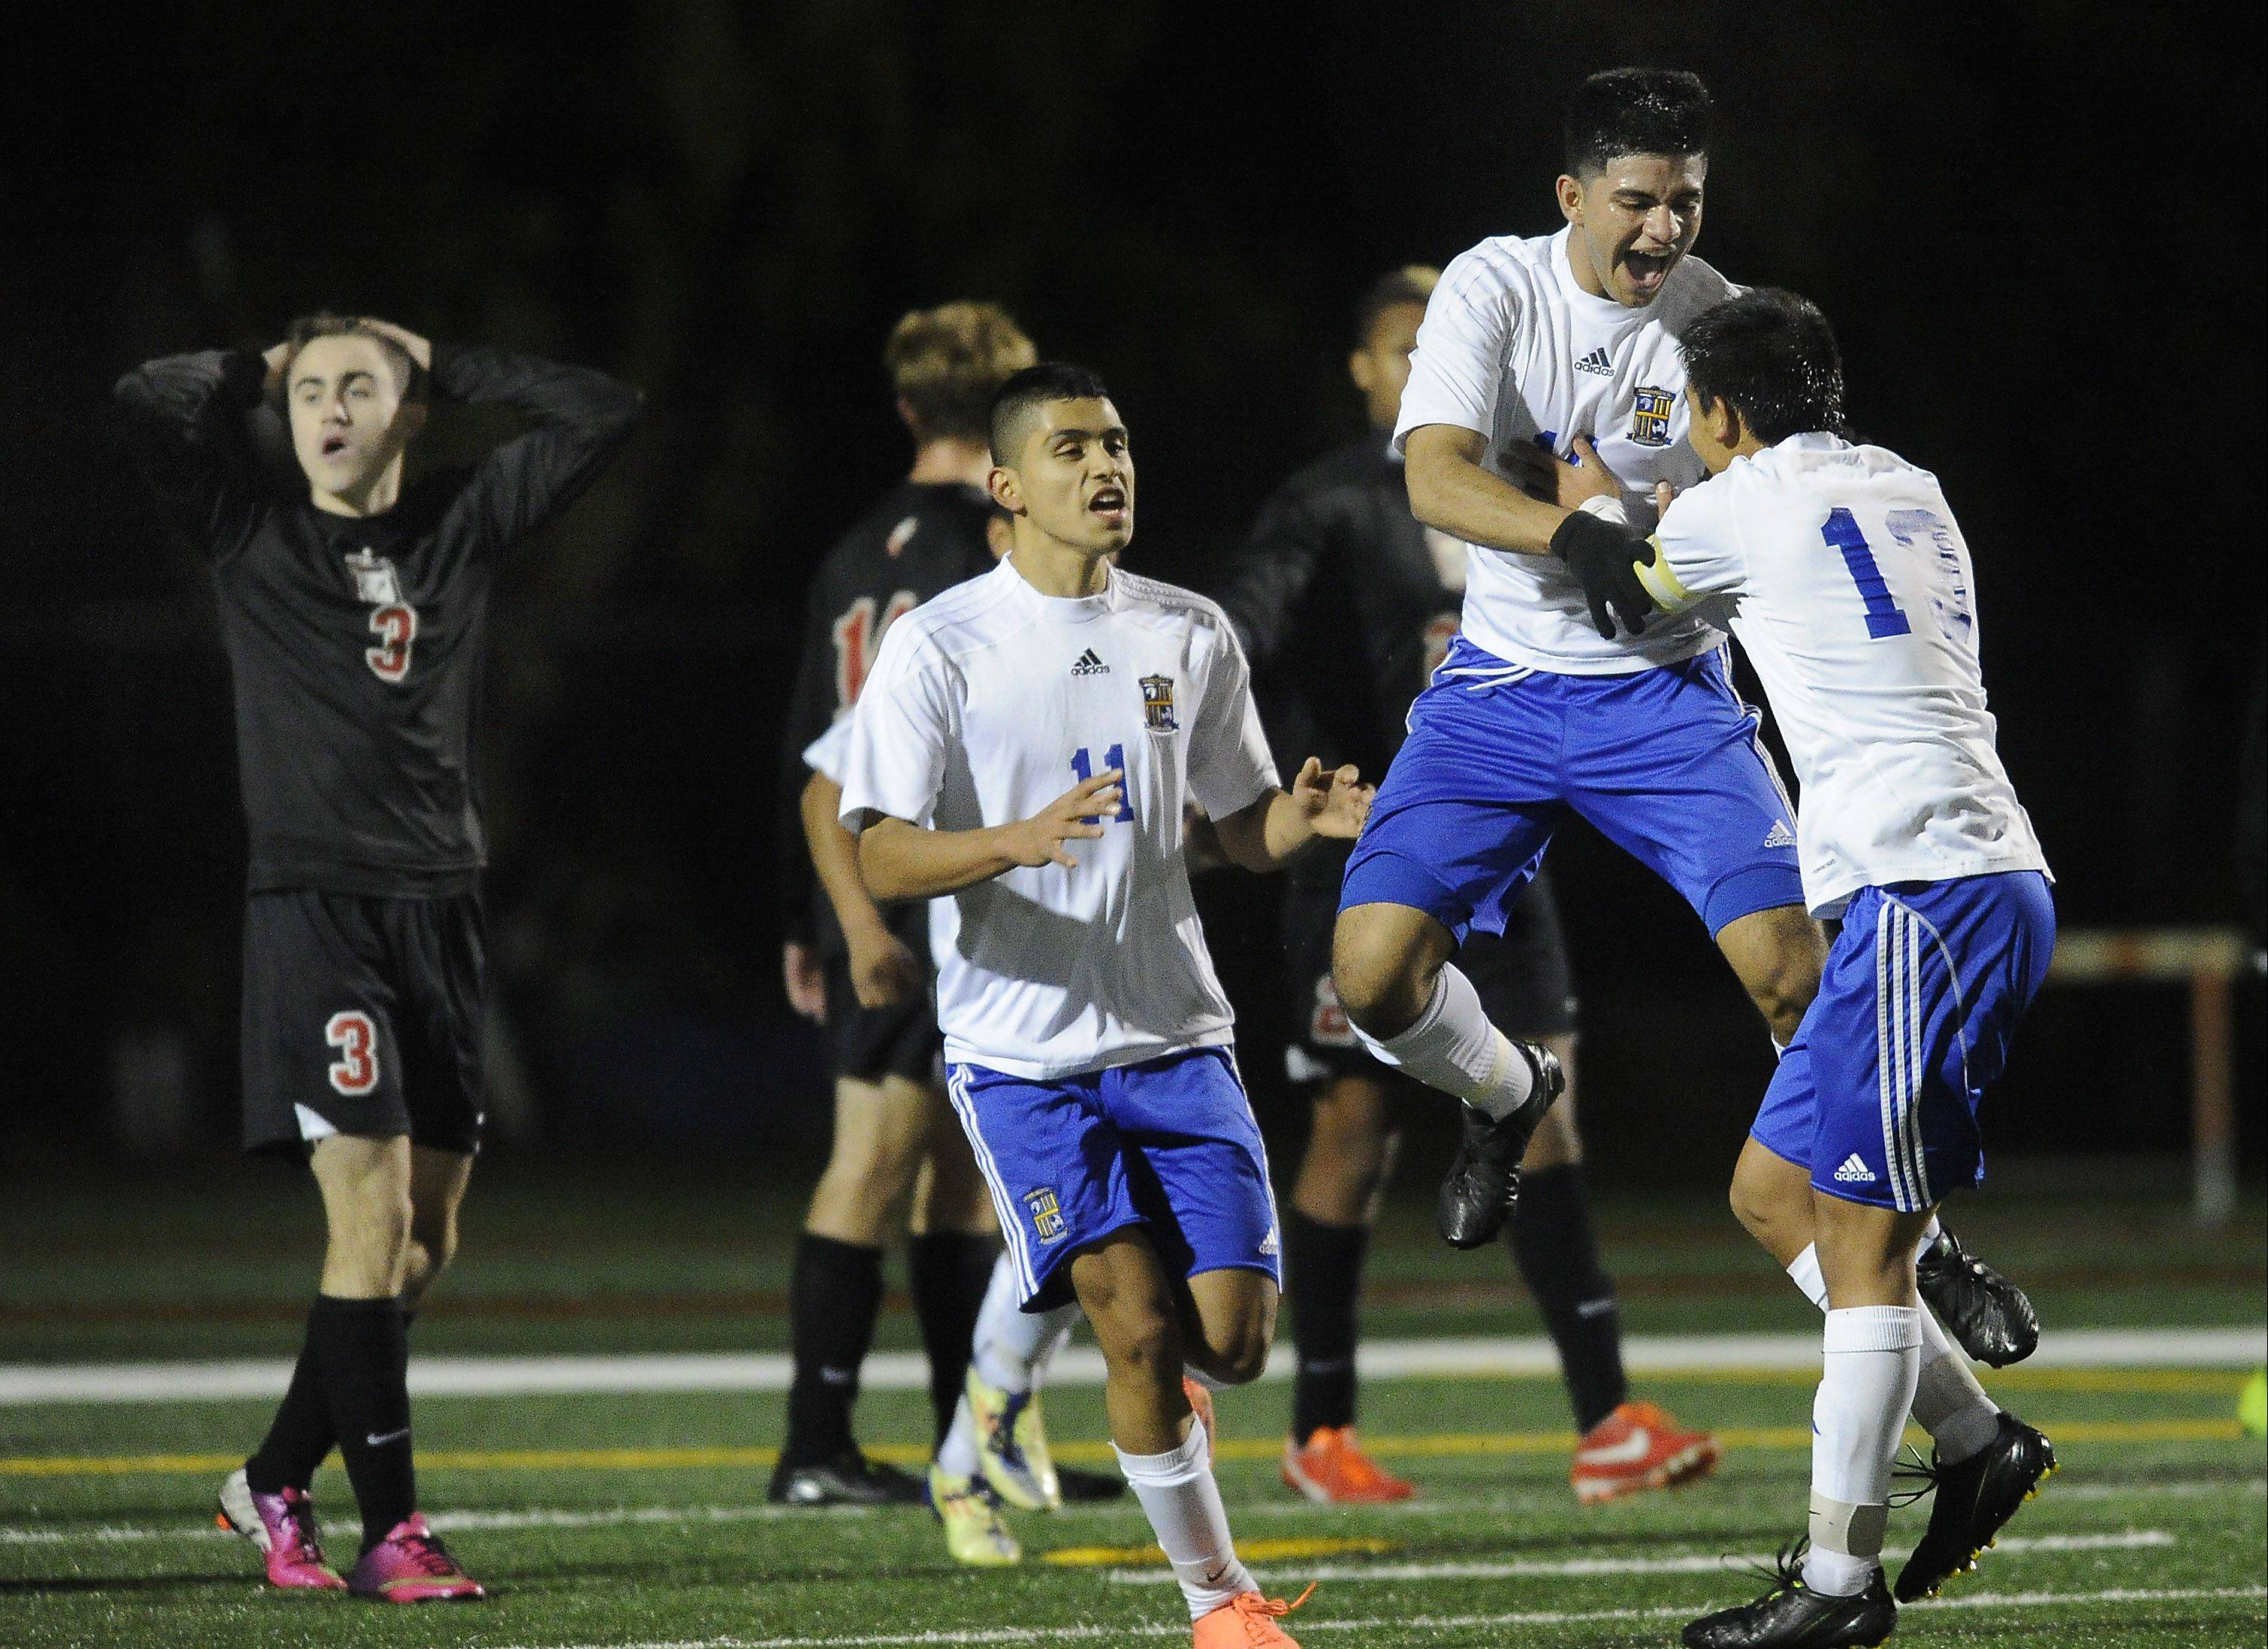 Wheeling�s Marino Lopez and teammate Jose Garcia celebrate Lopez�s go-ahead goal during the Wildcats� 2-1 victory over Barrington in Class 3A supersectional play at Hersey on Tuesday.